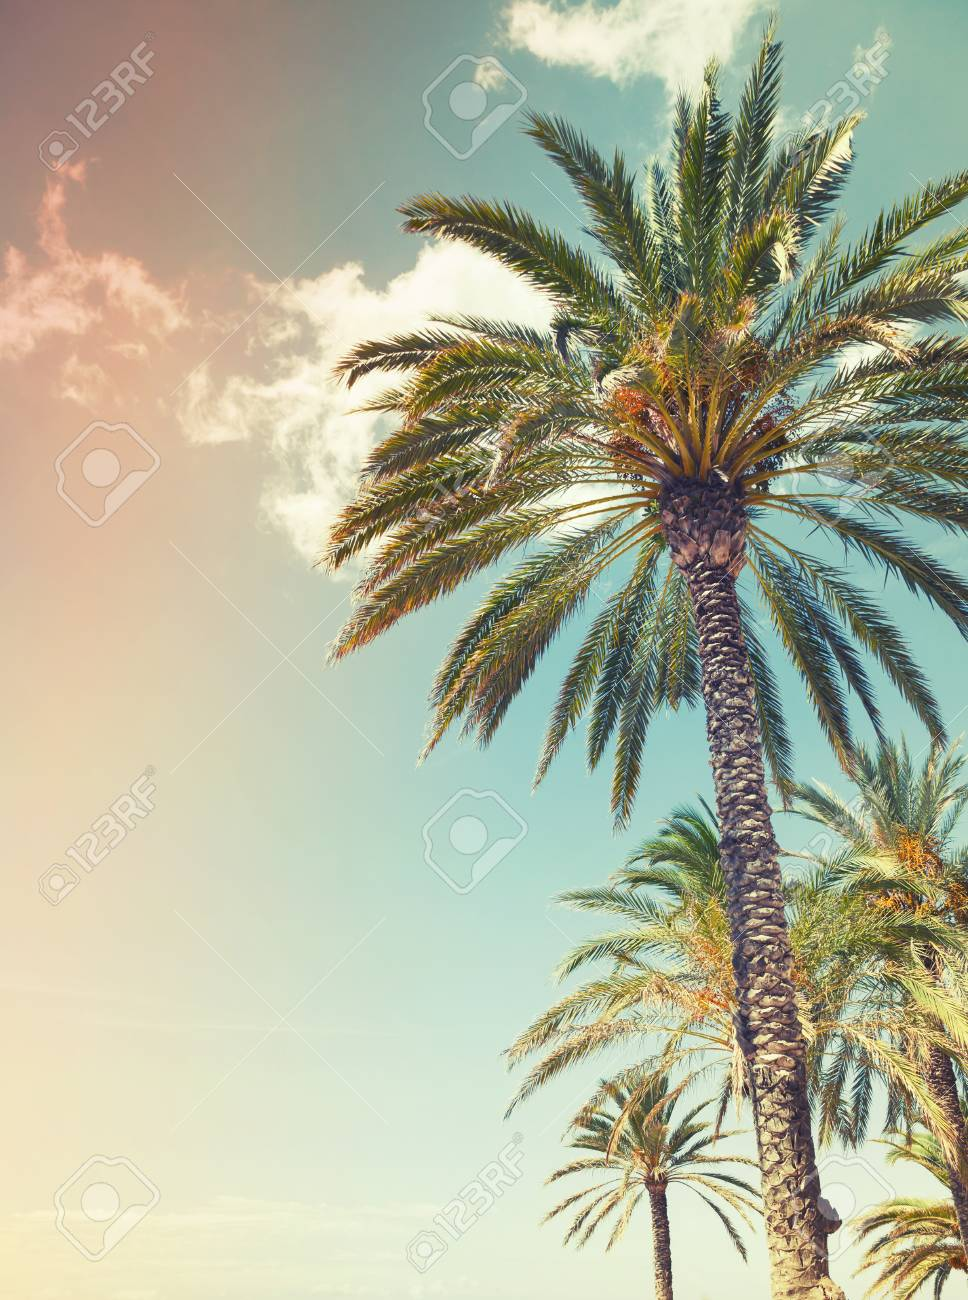 Palm Trees Over Cloudy Sky Background. Vintage Style. Photo With ...